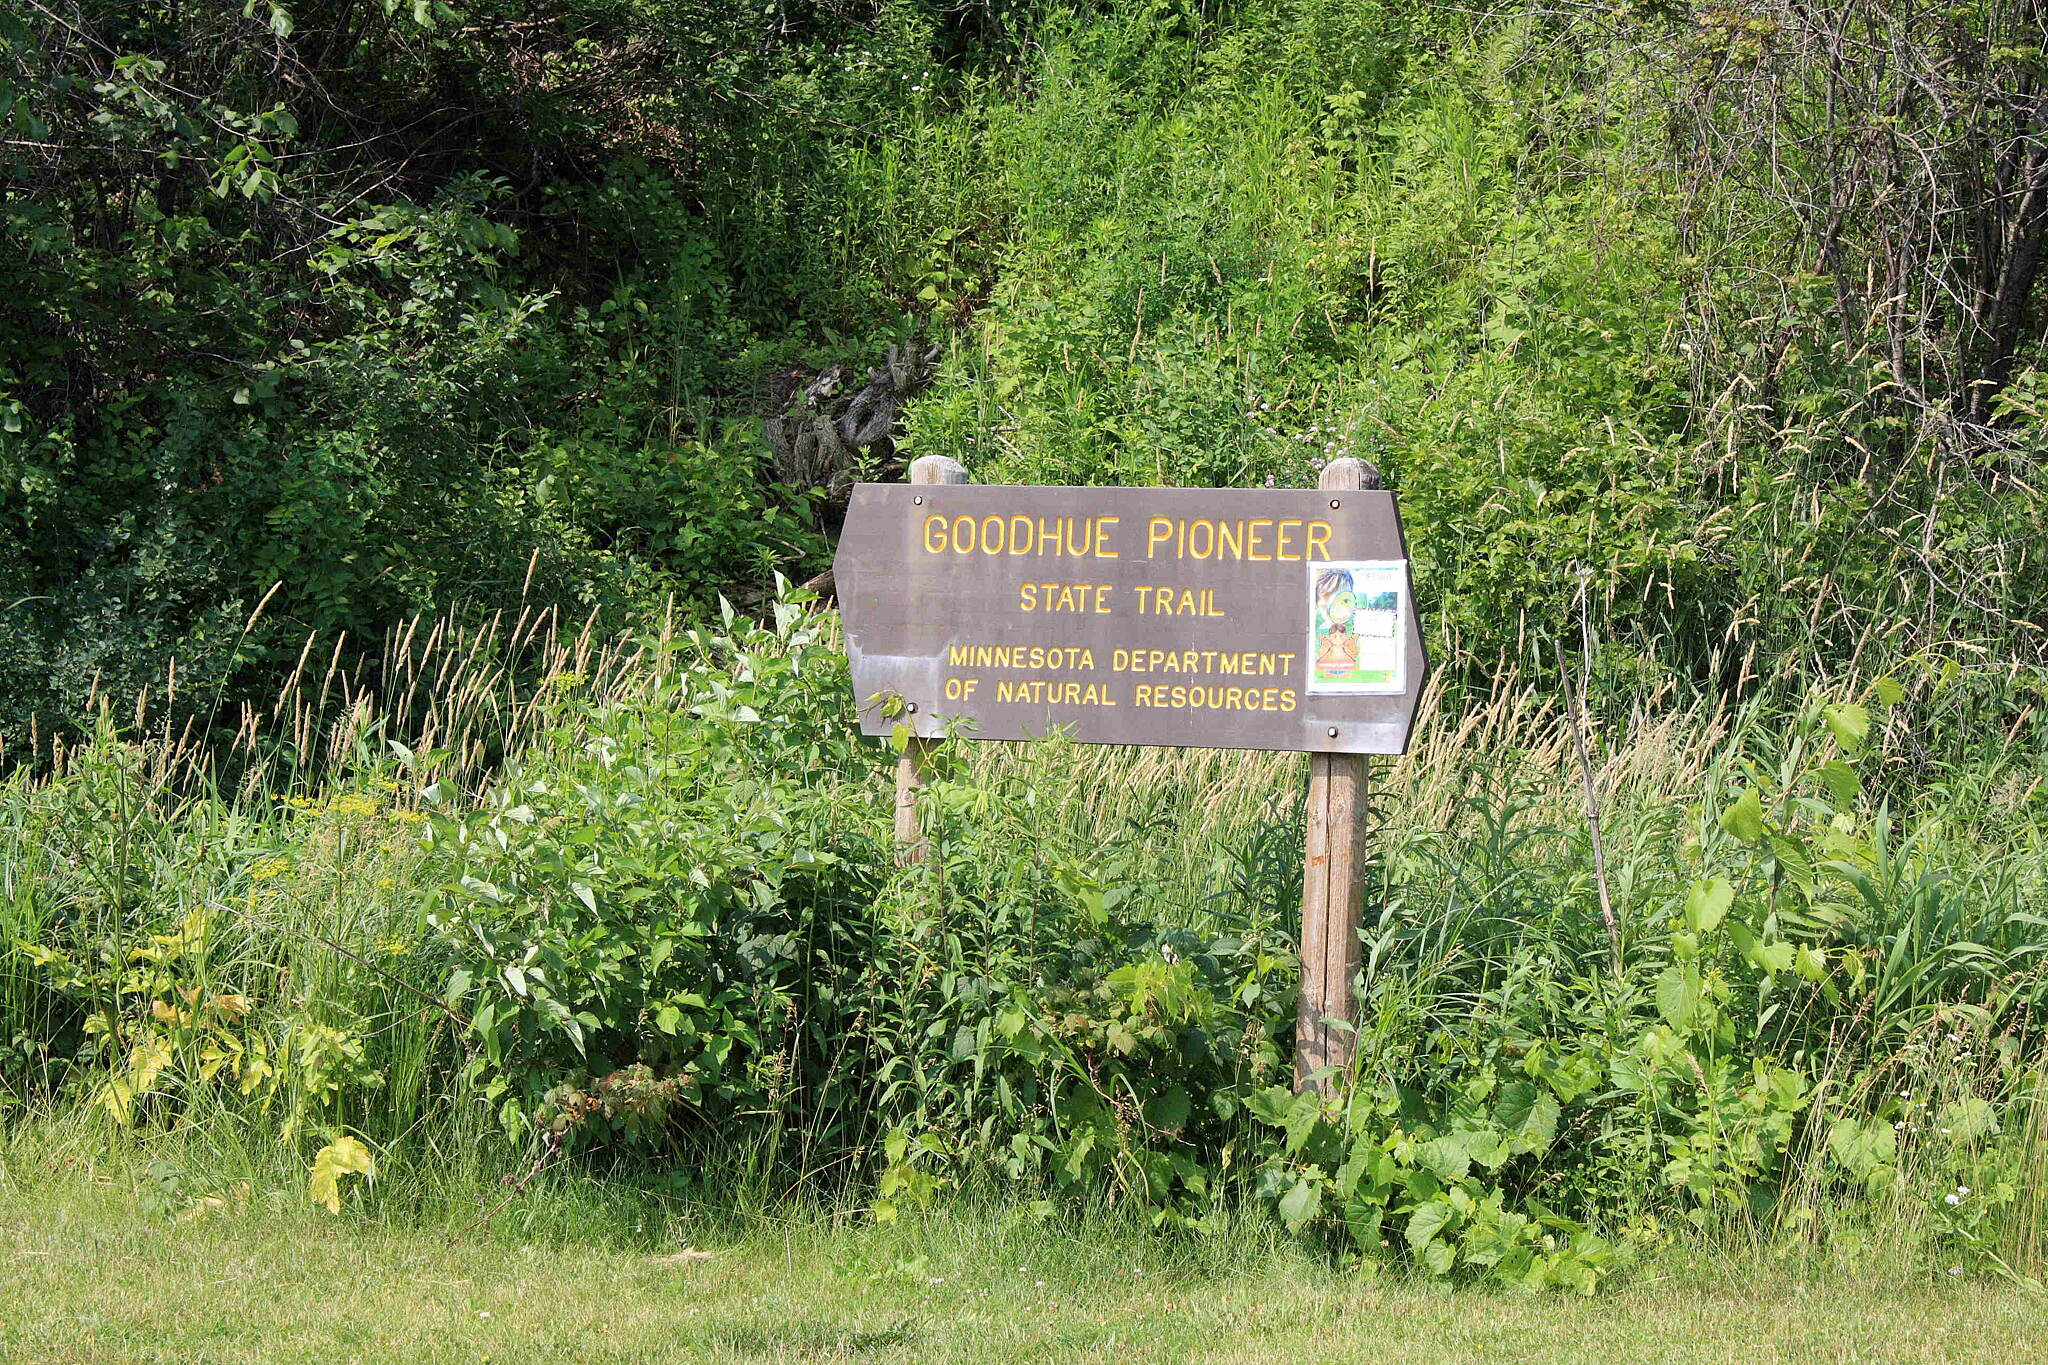 Goodhue Pioneer State Trail Starting in Red Wing Starting in Red Wing for the Goodhue Trail